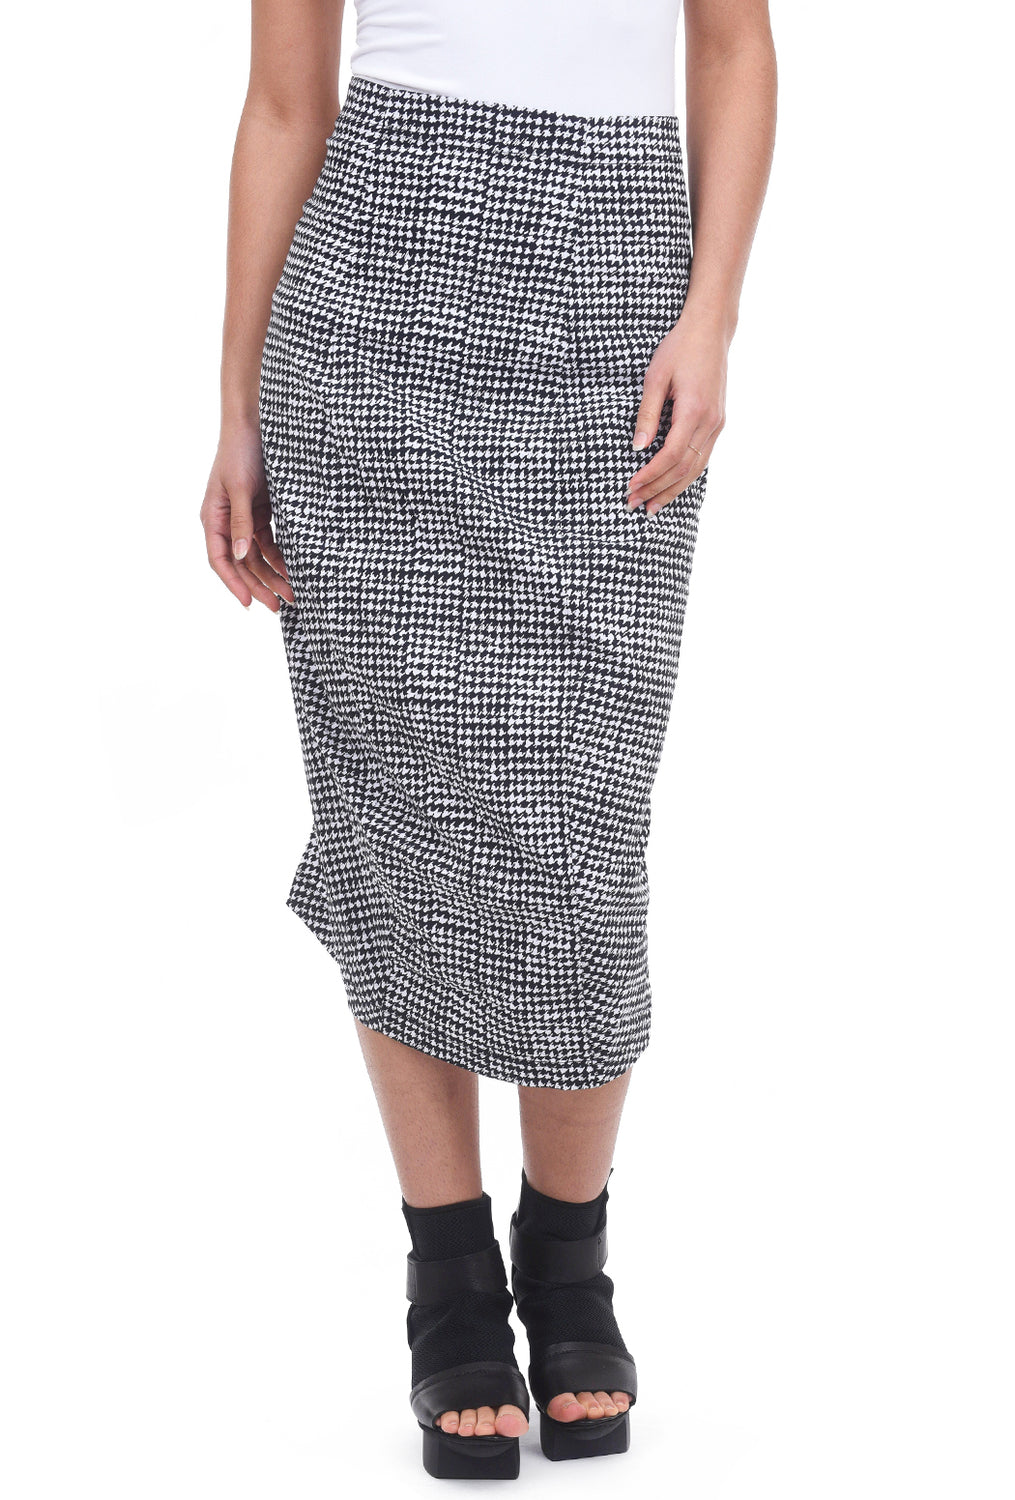 6464bdb78 Rundholz Black Label Tuck Houndstooth Skirt, Black/White – Evie Lou